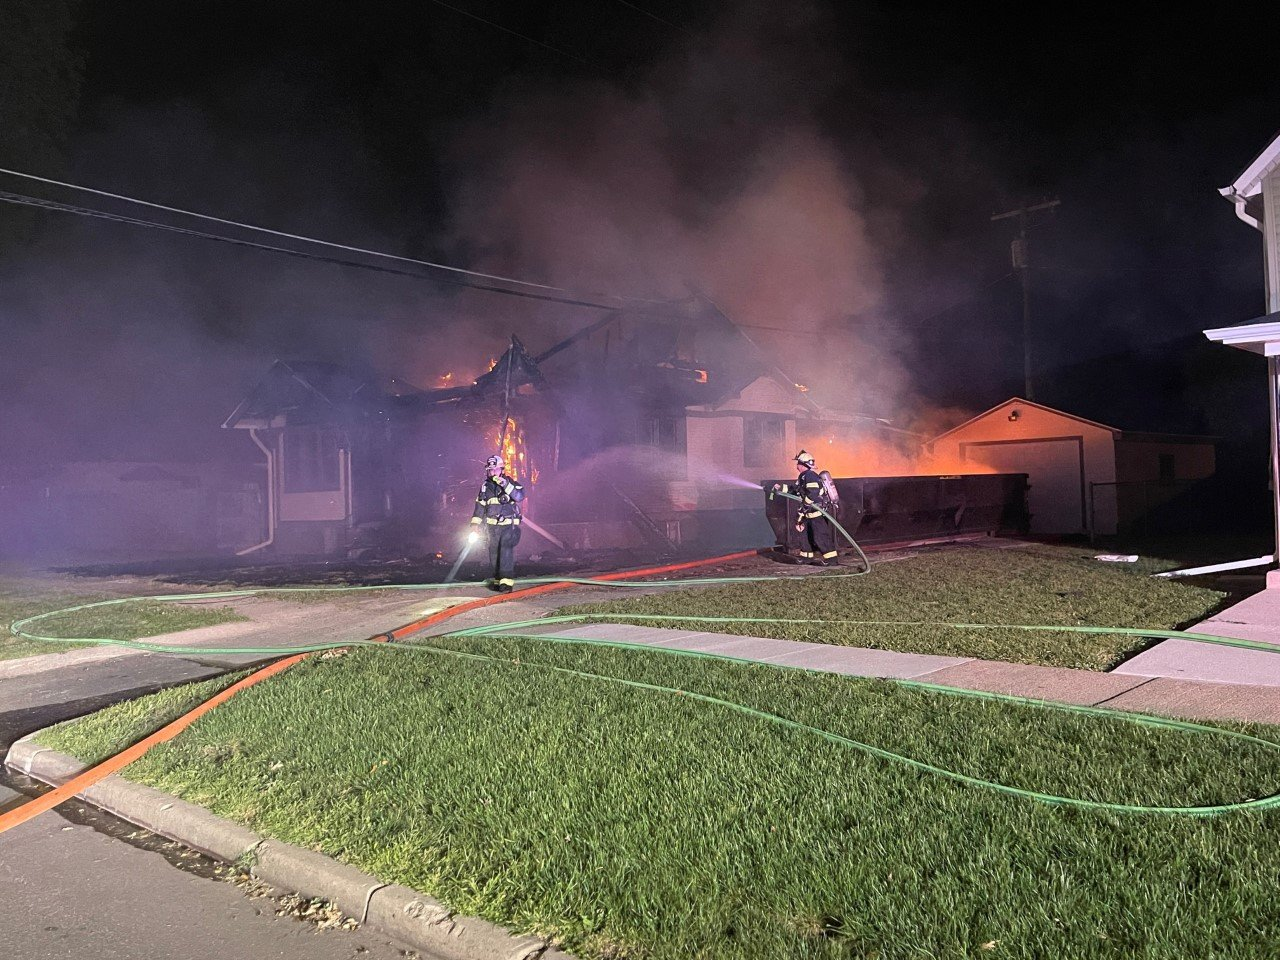 Firefighters fighting a structures fire with visible damage to the structure.